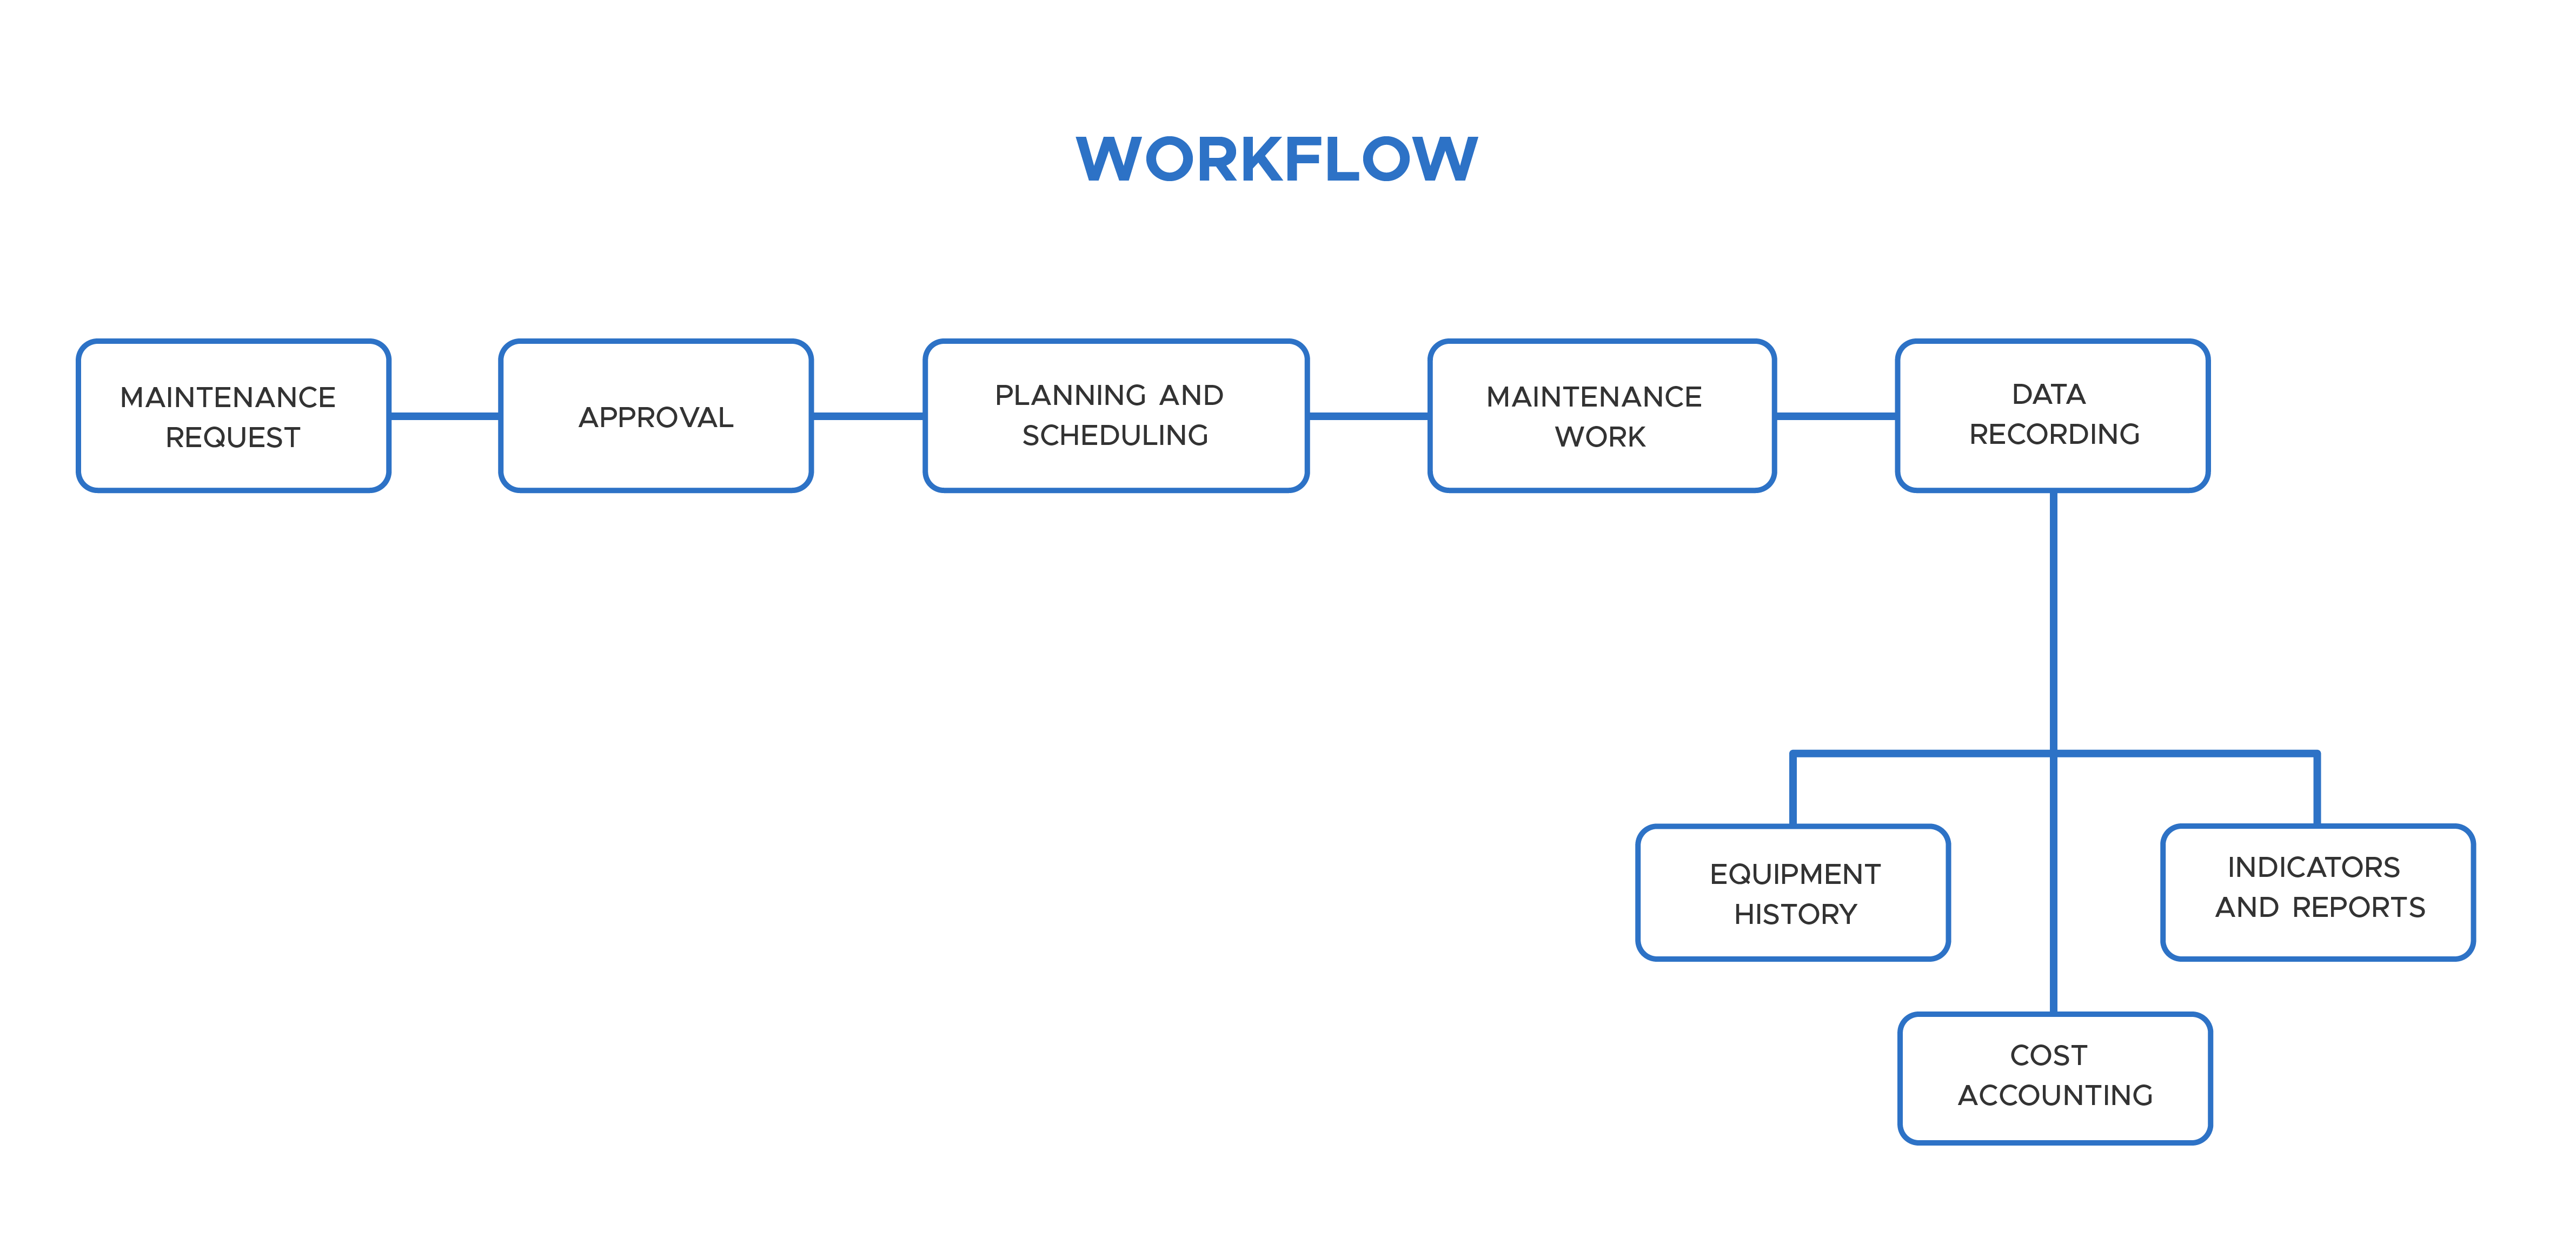 CMMS Workflow